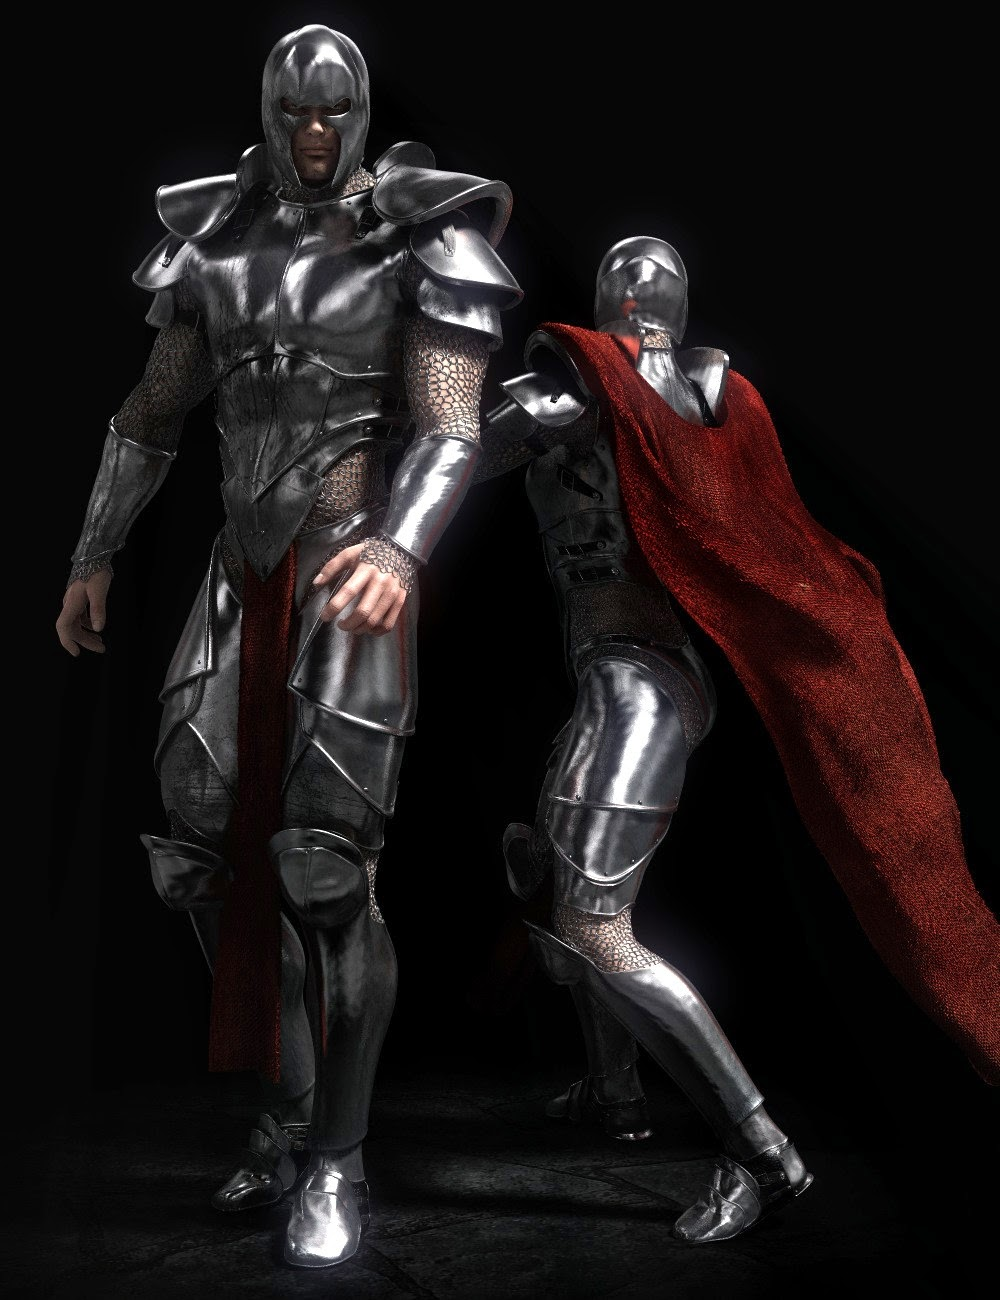 3d Armor Images - Reverse Search